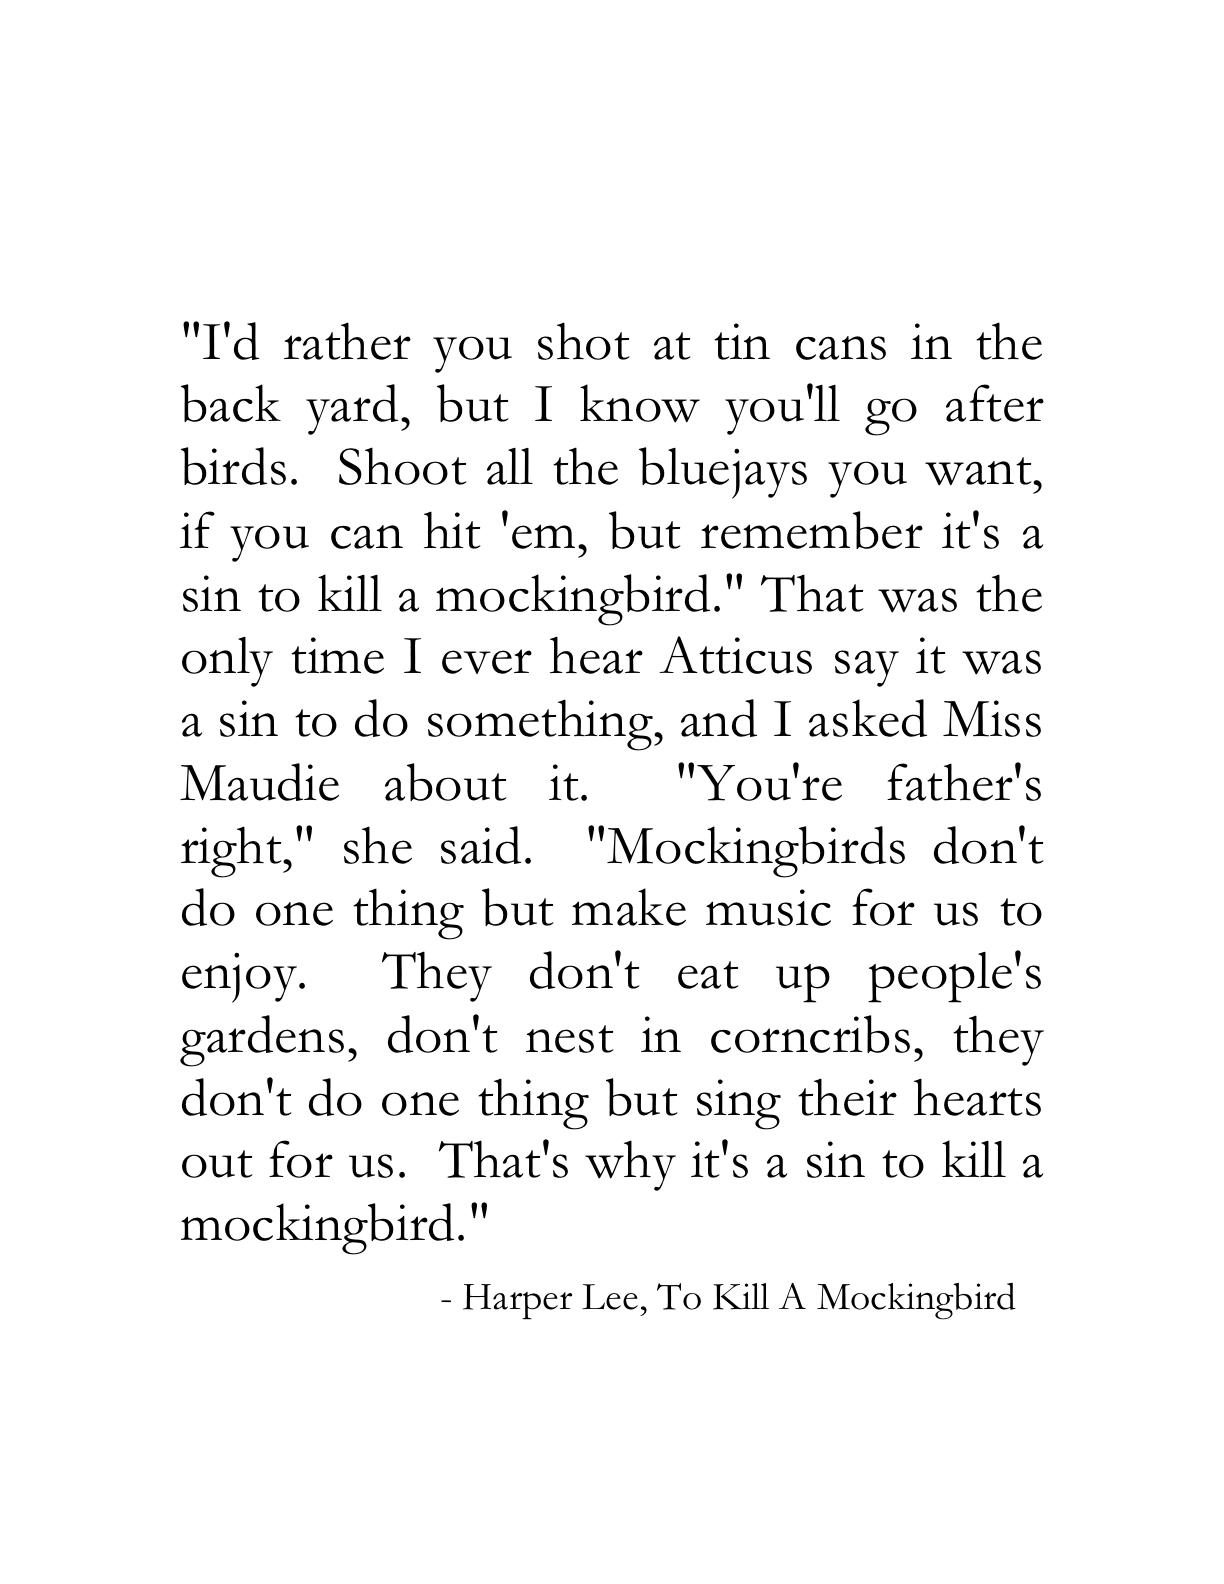 atticus finch quotes essay The parenting style of atticus finch essaysas children, we often look to our parents for guidance and moral education in the novel &quotto kill a mockingbird&quot by harper lee, atticus finch.